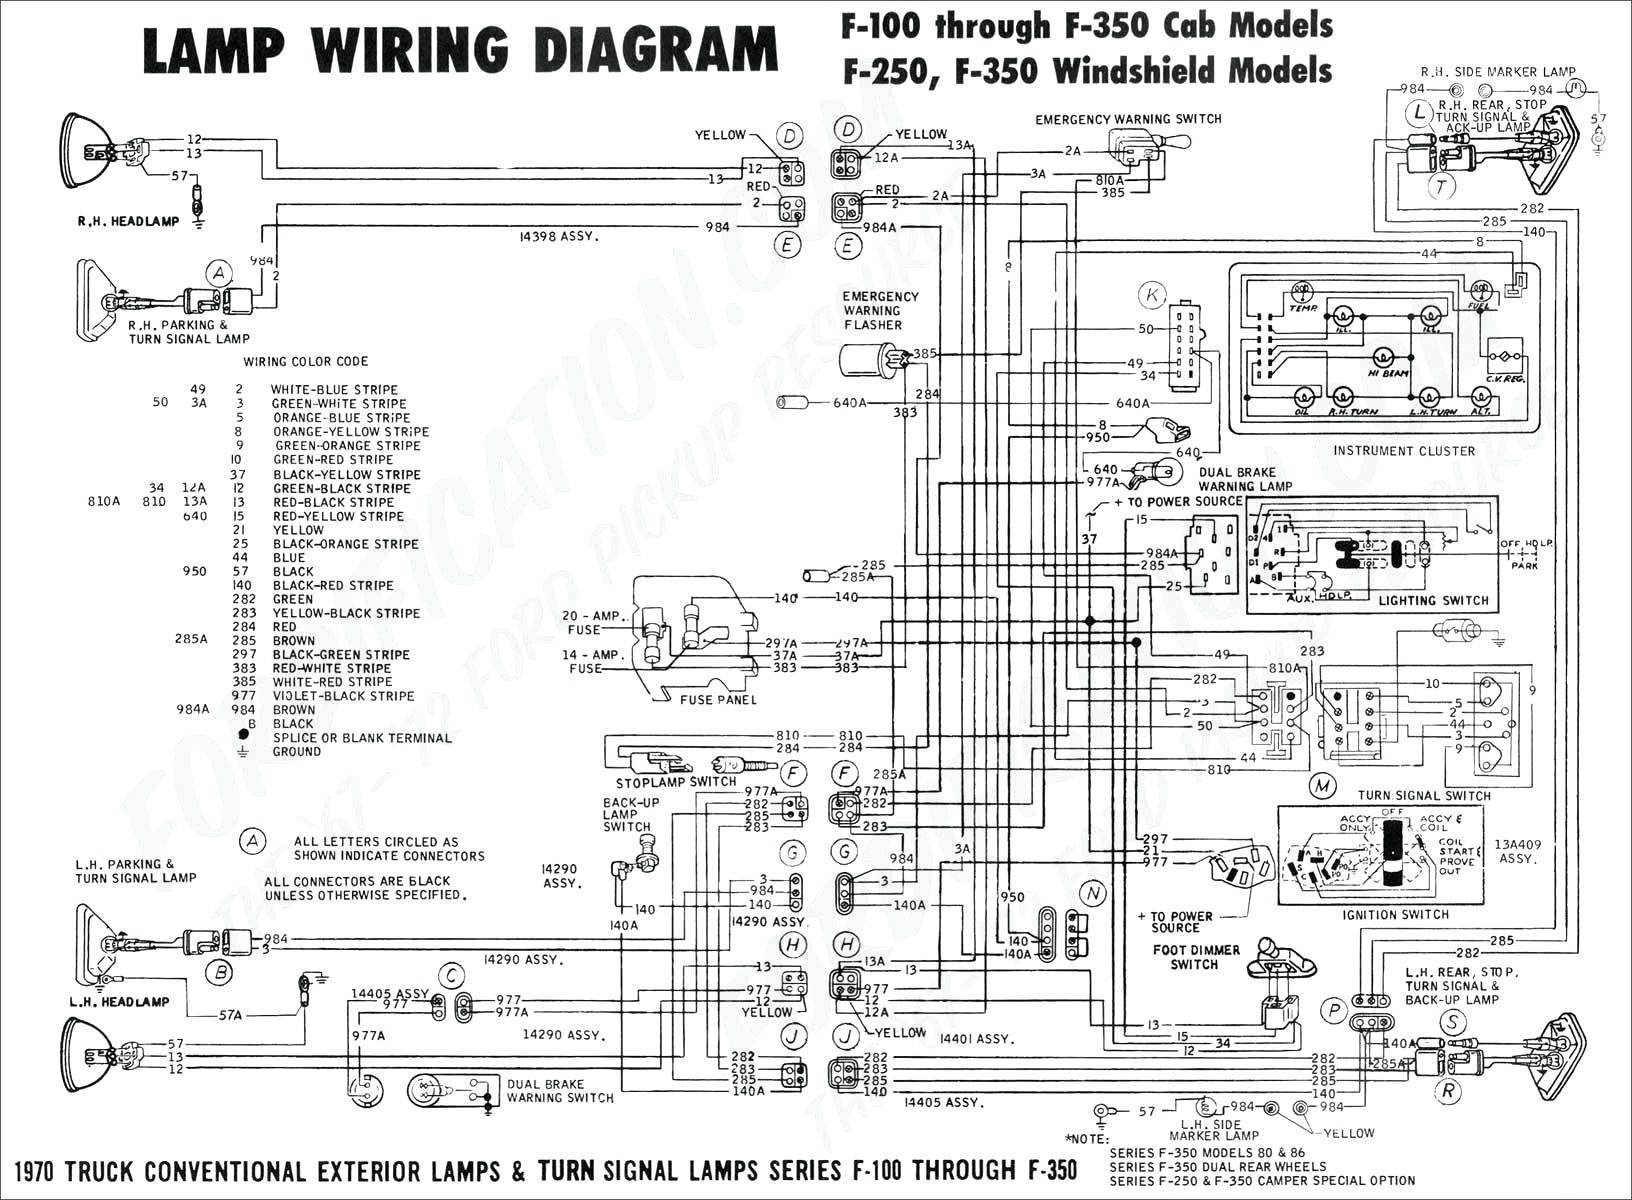 bose 321 wiring diagram wiring diagram Texas Bragg Trailer Wiring Diagram texas bragg trailers – built to work